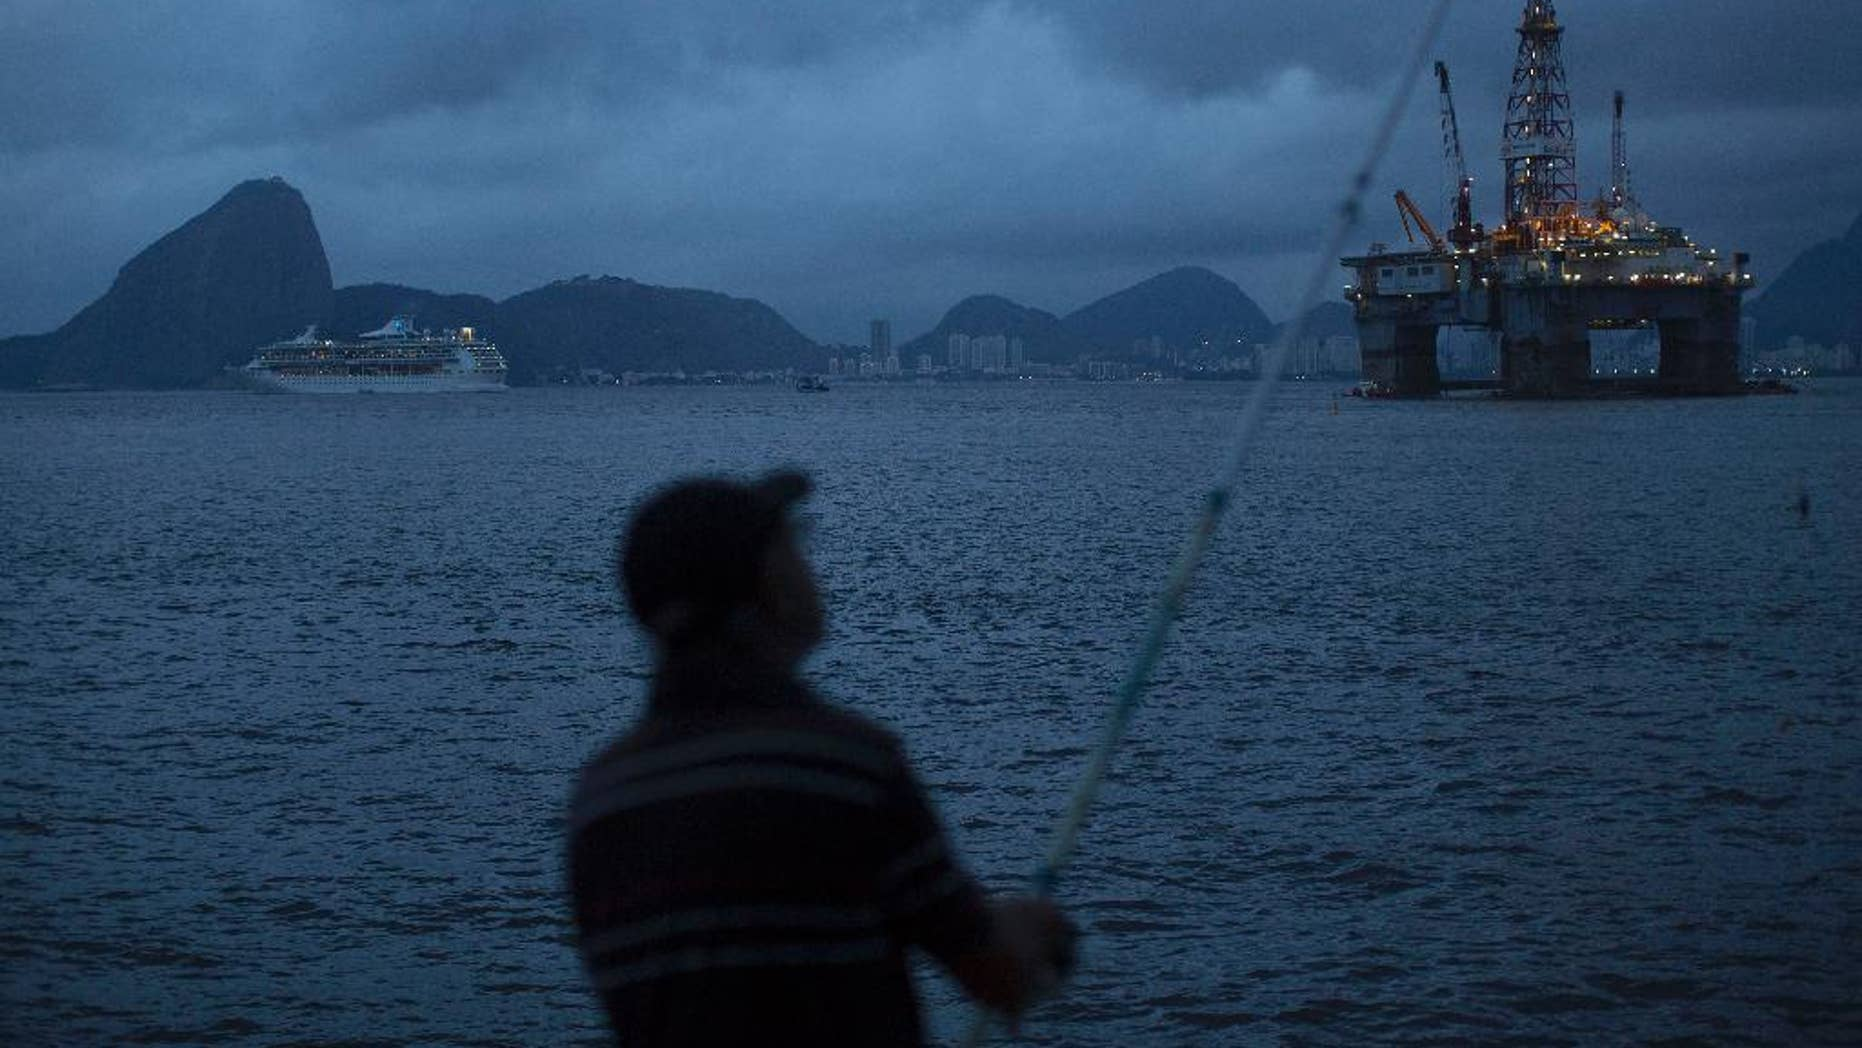 FILE - In this April 21, 2015 file photo, a man fishes in Guanabara Bay where an oil platform floats, backdropped by Sugar Loaf Mountain, left, in Niteroi, Brazil. The Brazilian government on Monday, Sept. 12, 2016 ratified its participation in the Paris Agreement on climate change, a significant step by Latin America's largest emitter of greenhouse gases that could spur other countries to move forward. (AP Photo/Leo Correa, File)